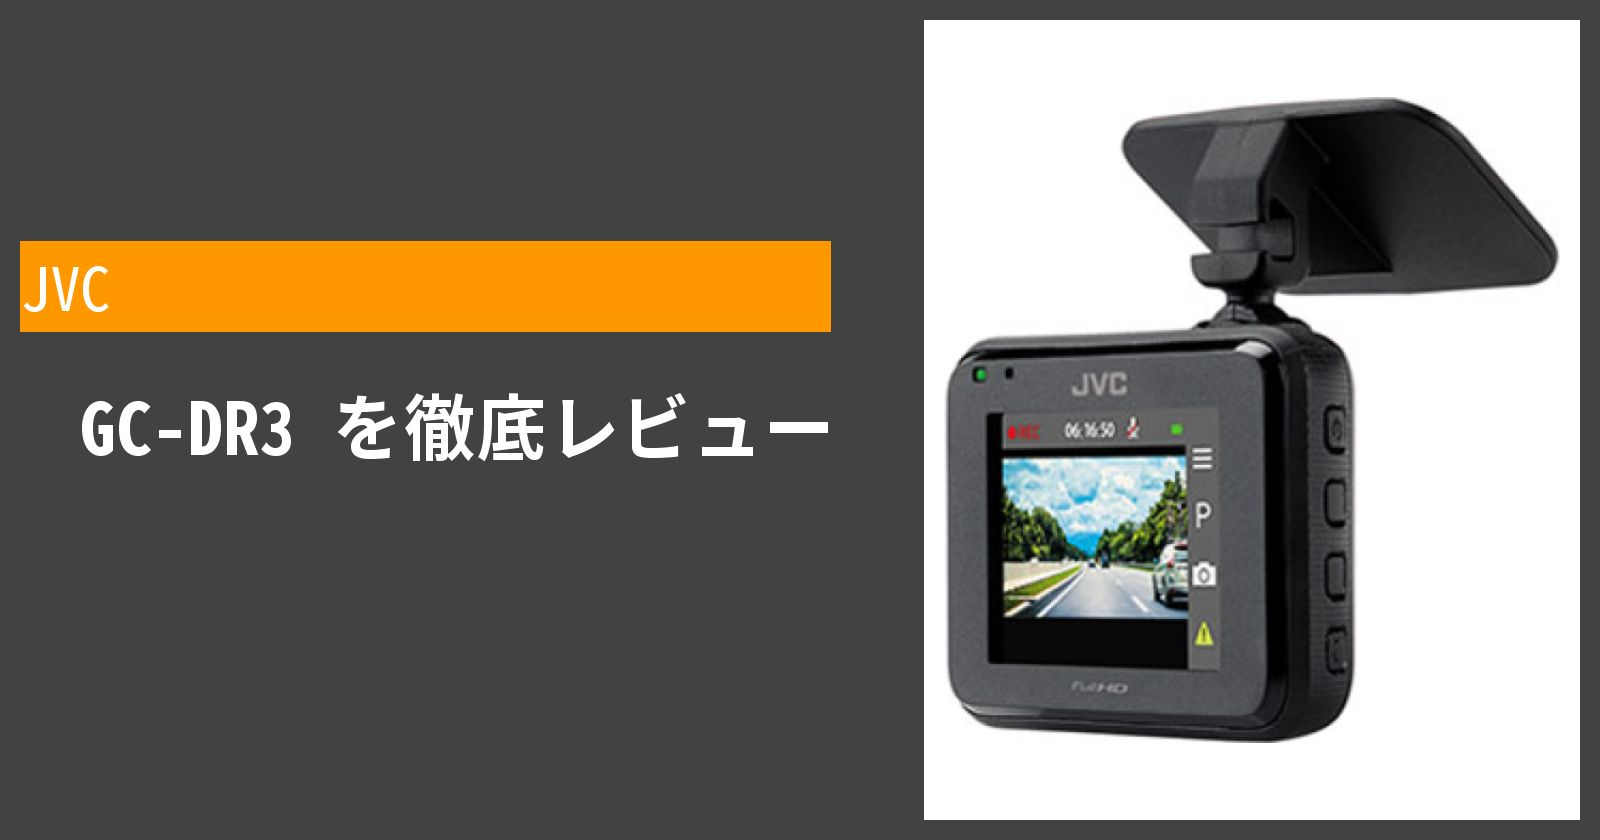 GC-DR3を徹底評価